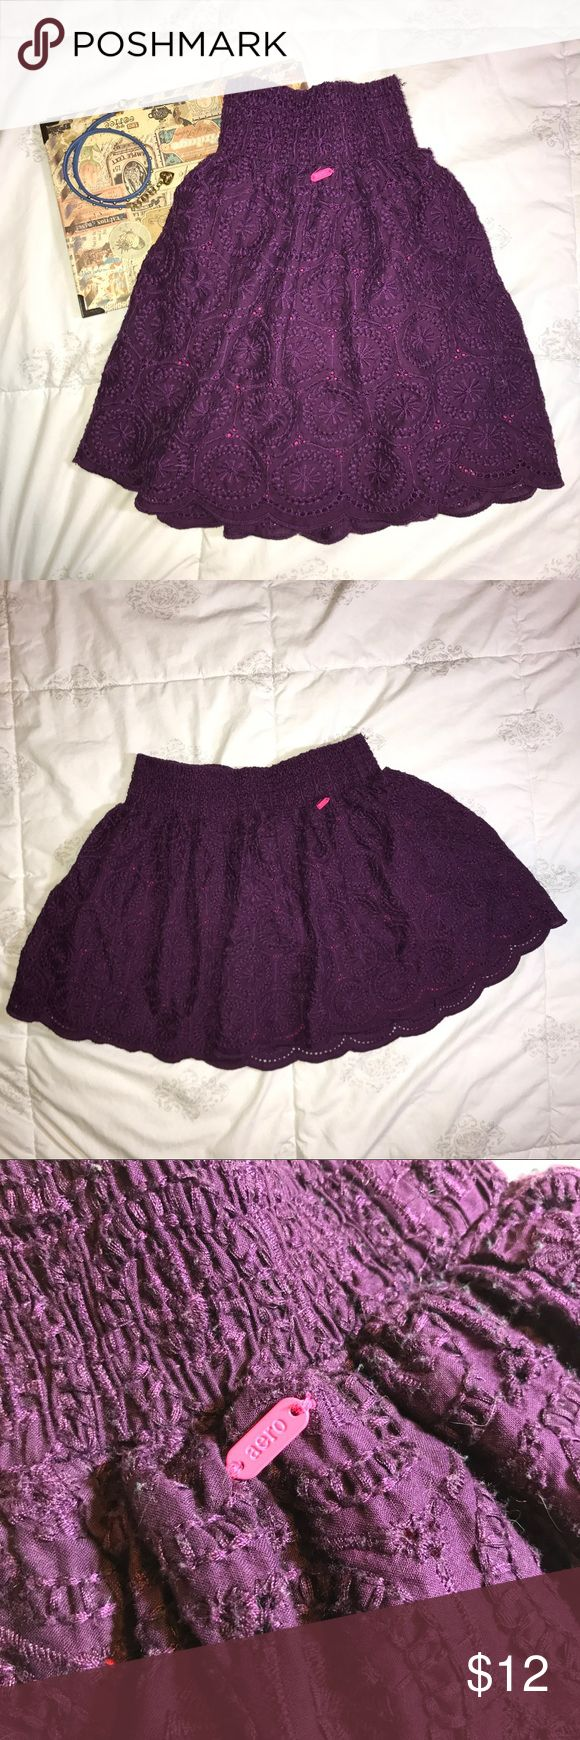 """❗️Final sale❗️Aeropostale mini dress ✨ Worn 2-3 times only! Long:13"""", and two layers. In good condition! Aeropostale Skirts Mini"""